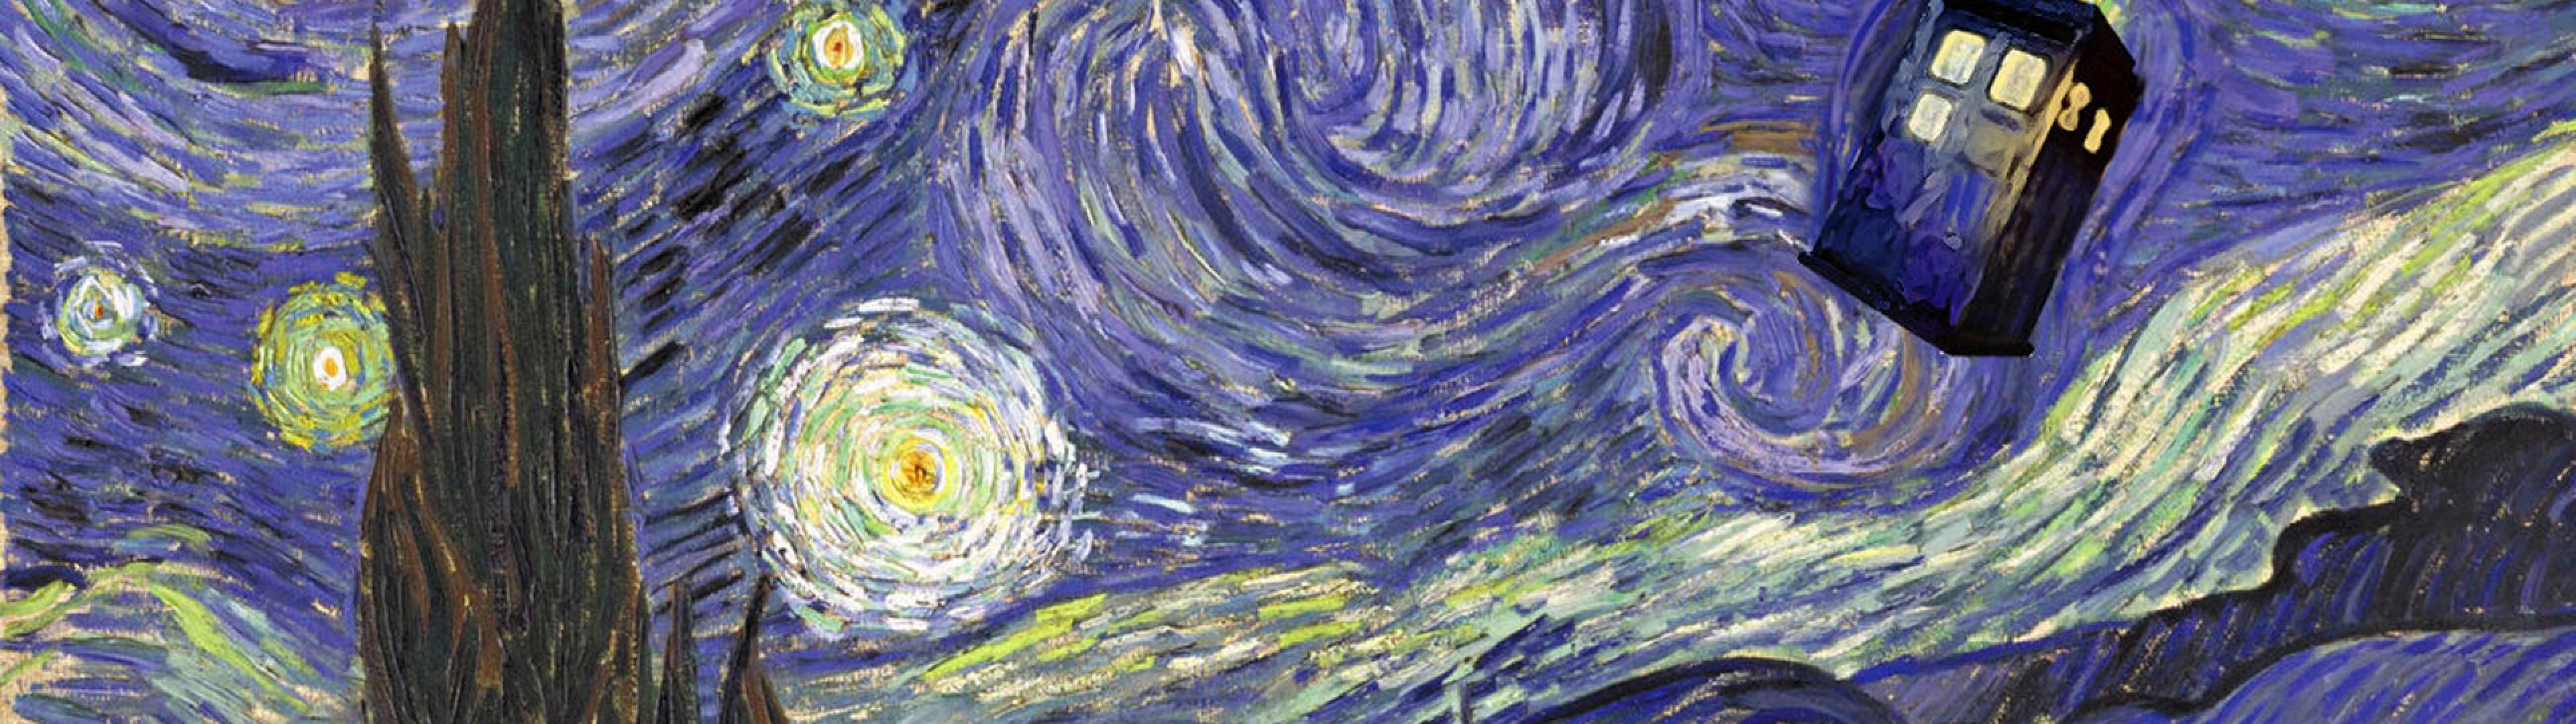 Wallpaper Starry Night Posted By Ryan Cunningham